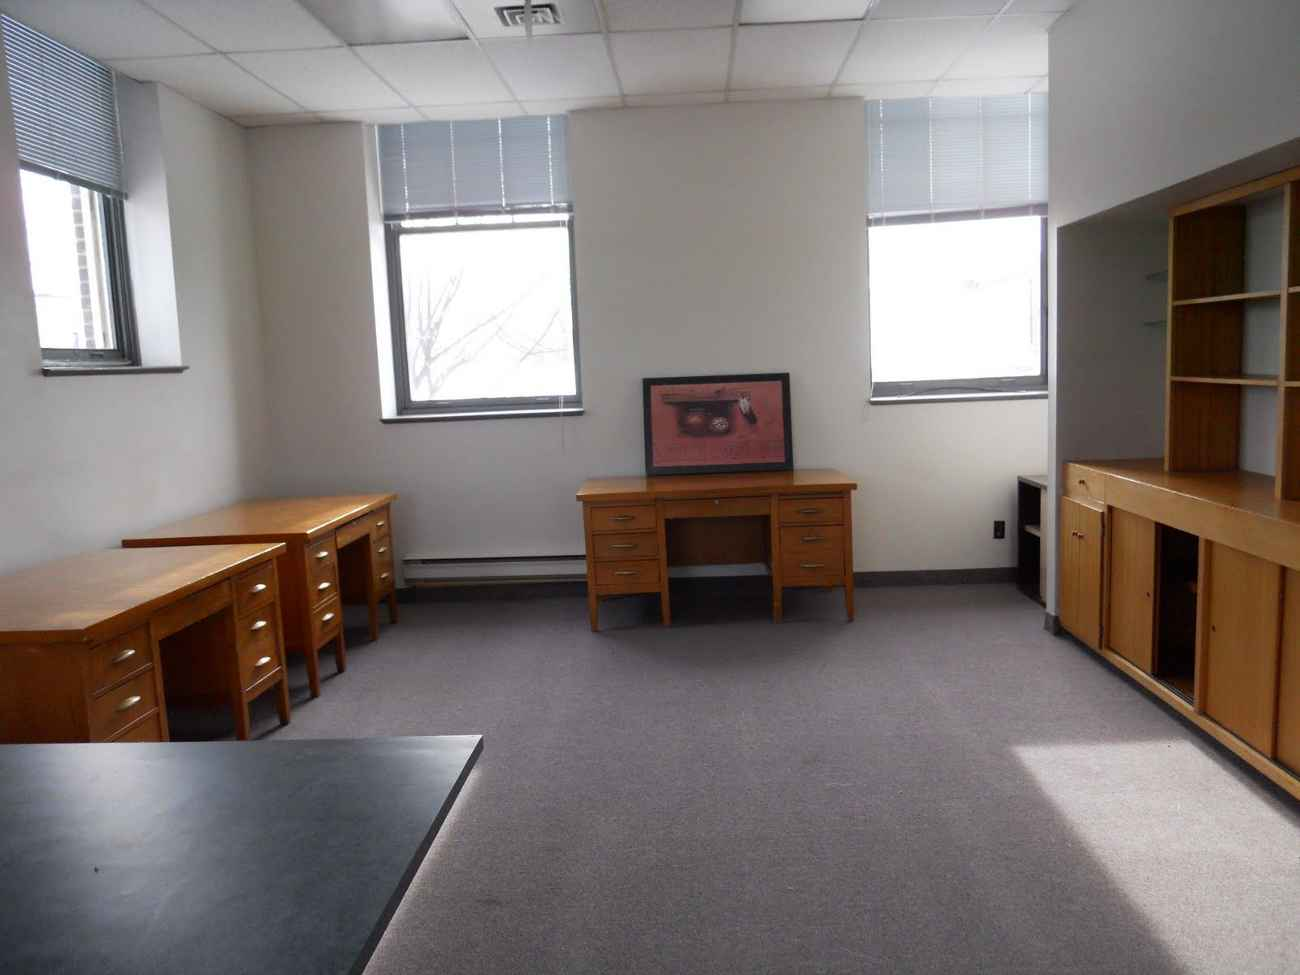 Cheap Prefessional Office Funriture Collection for Rent